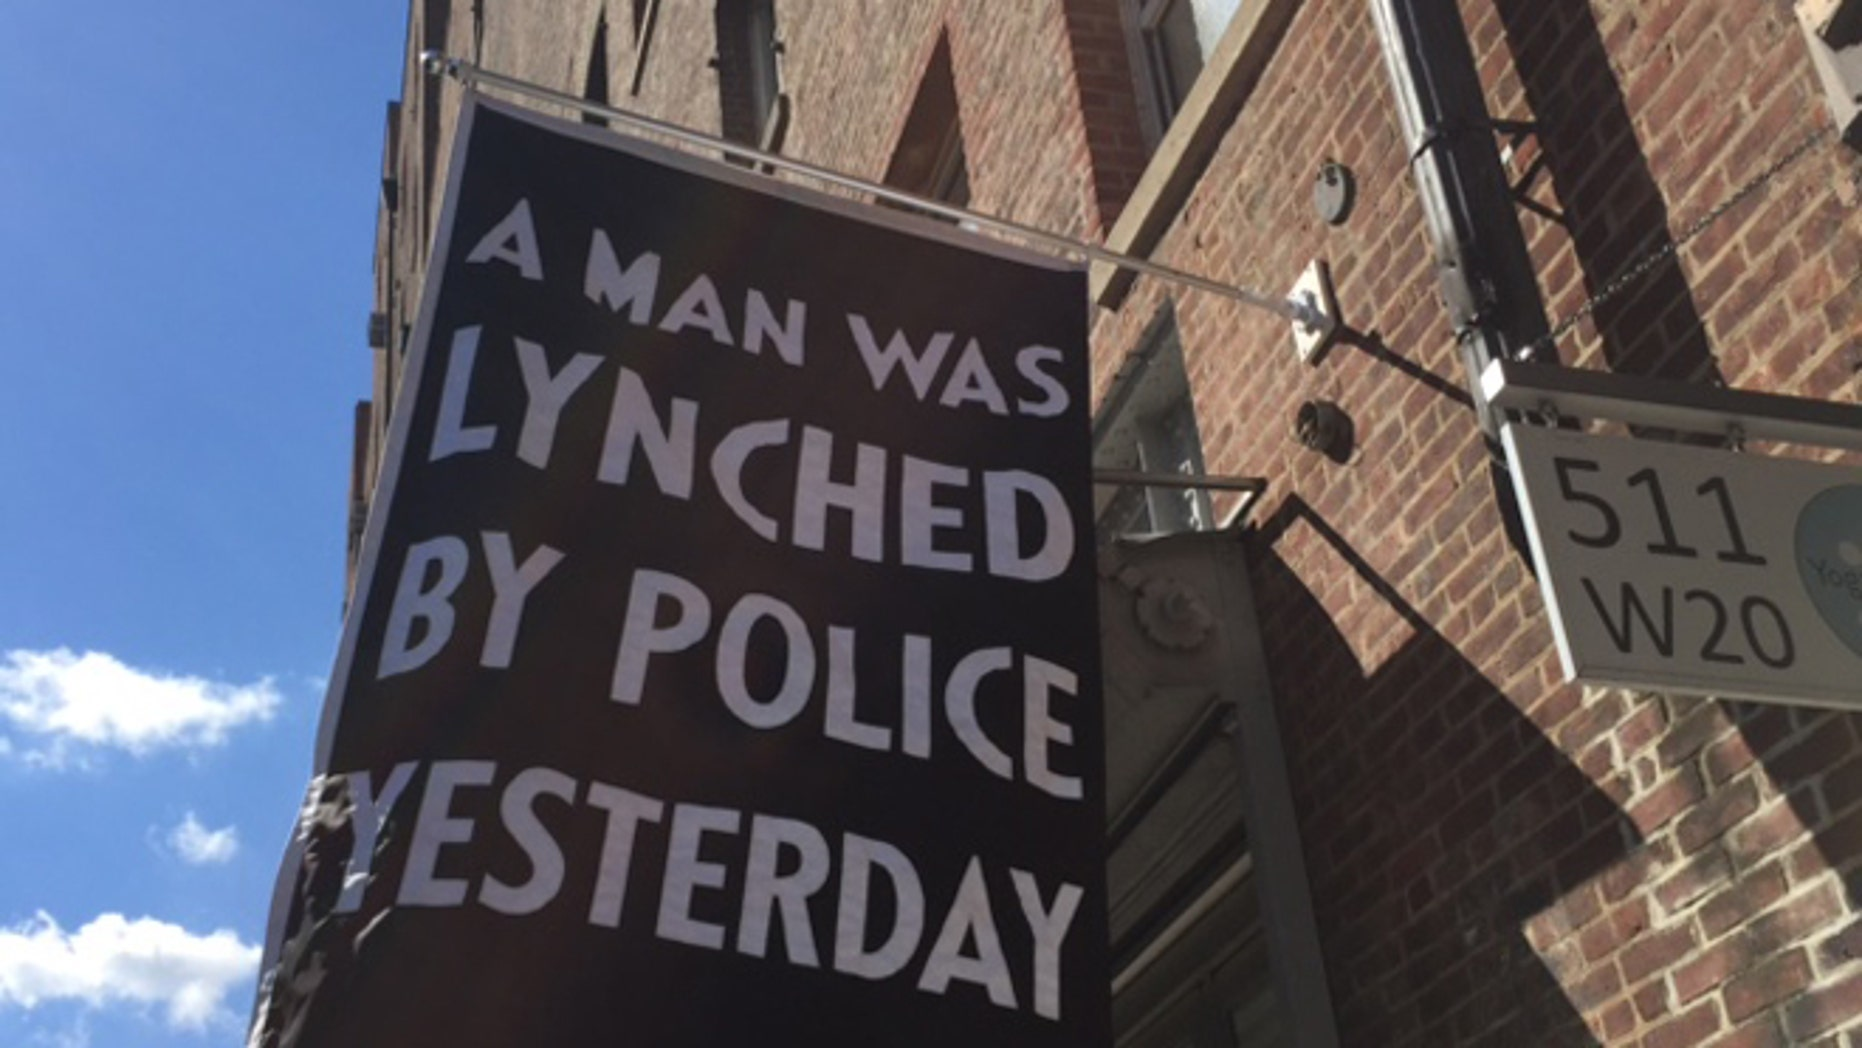 The art gallery's banner is stirring controversy, especially in the wake of last week's murder of five Dallas police officers. (FoxNews.com)